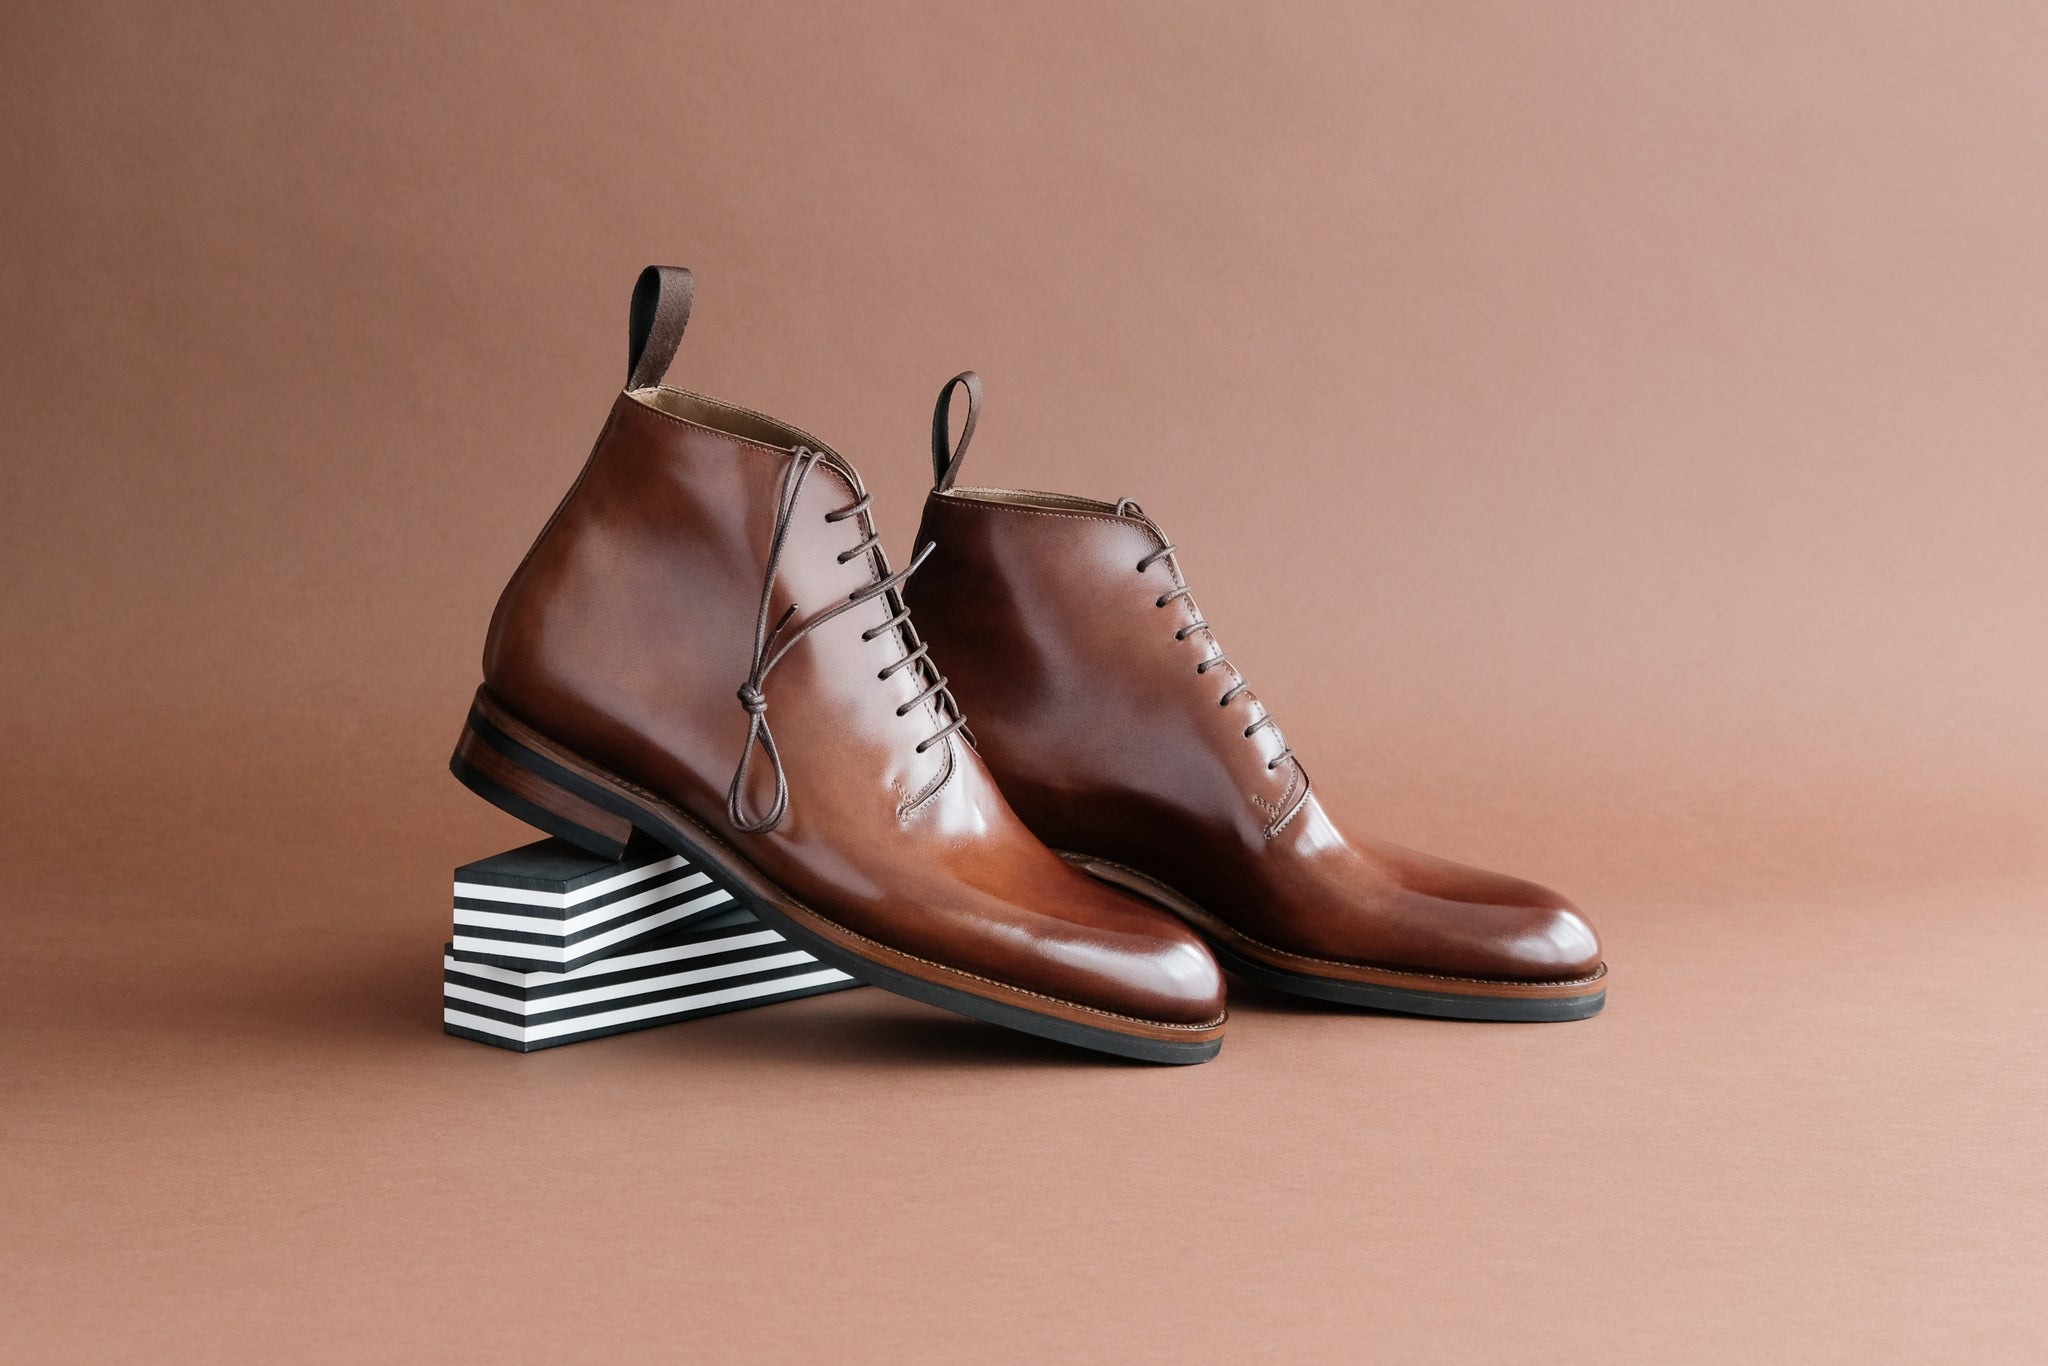 Zonkey Boot hand welted wholecut oxfords from Toscani Bavarian Calf